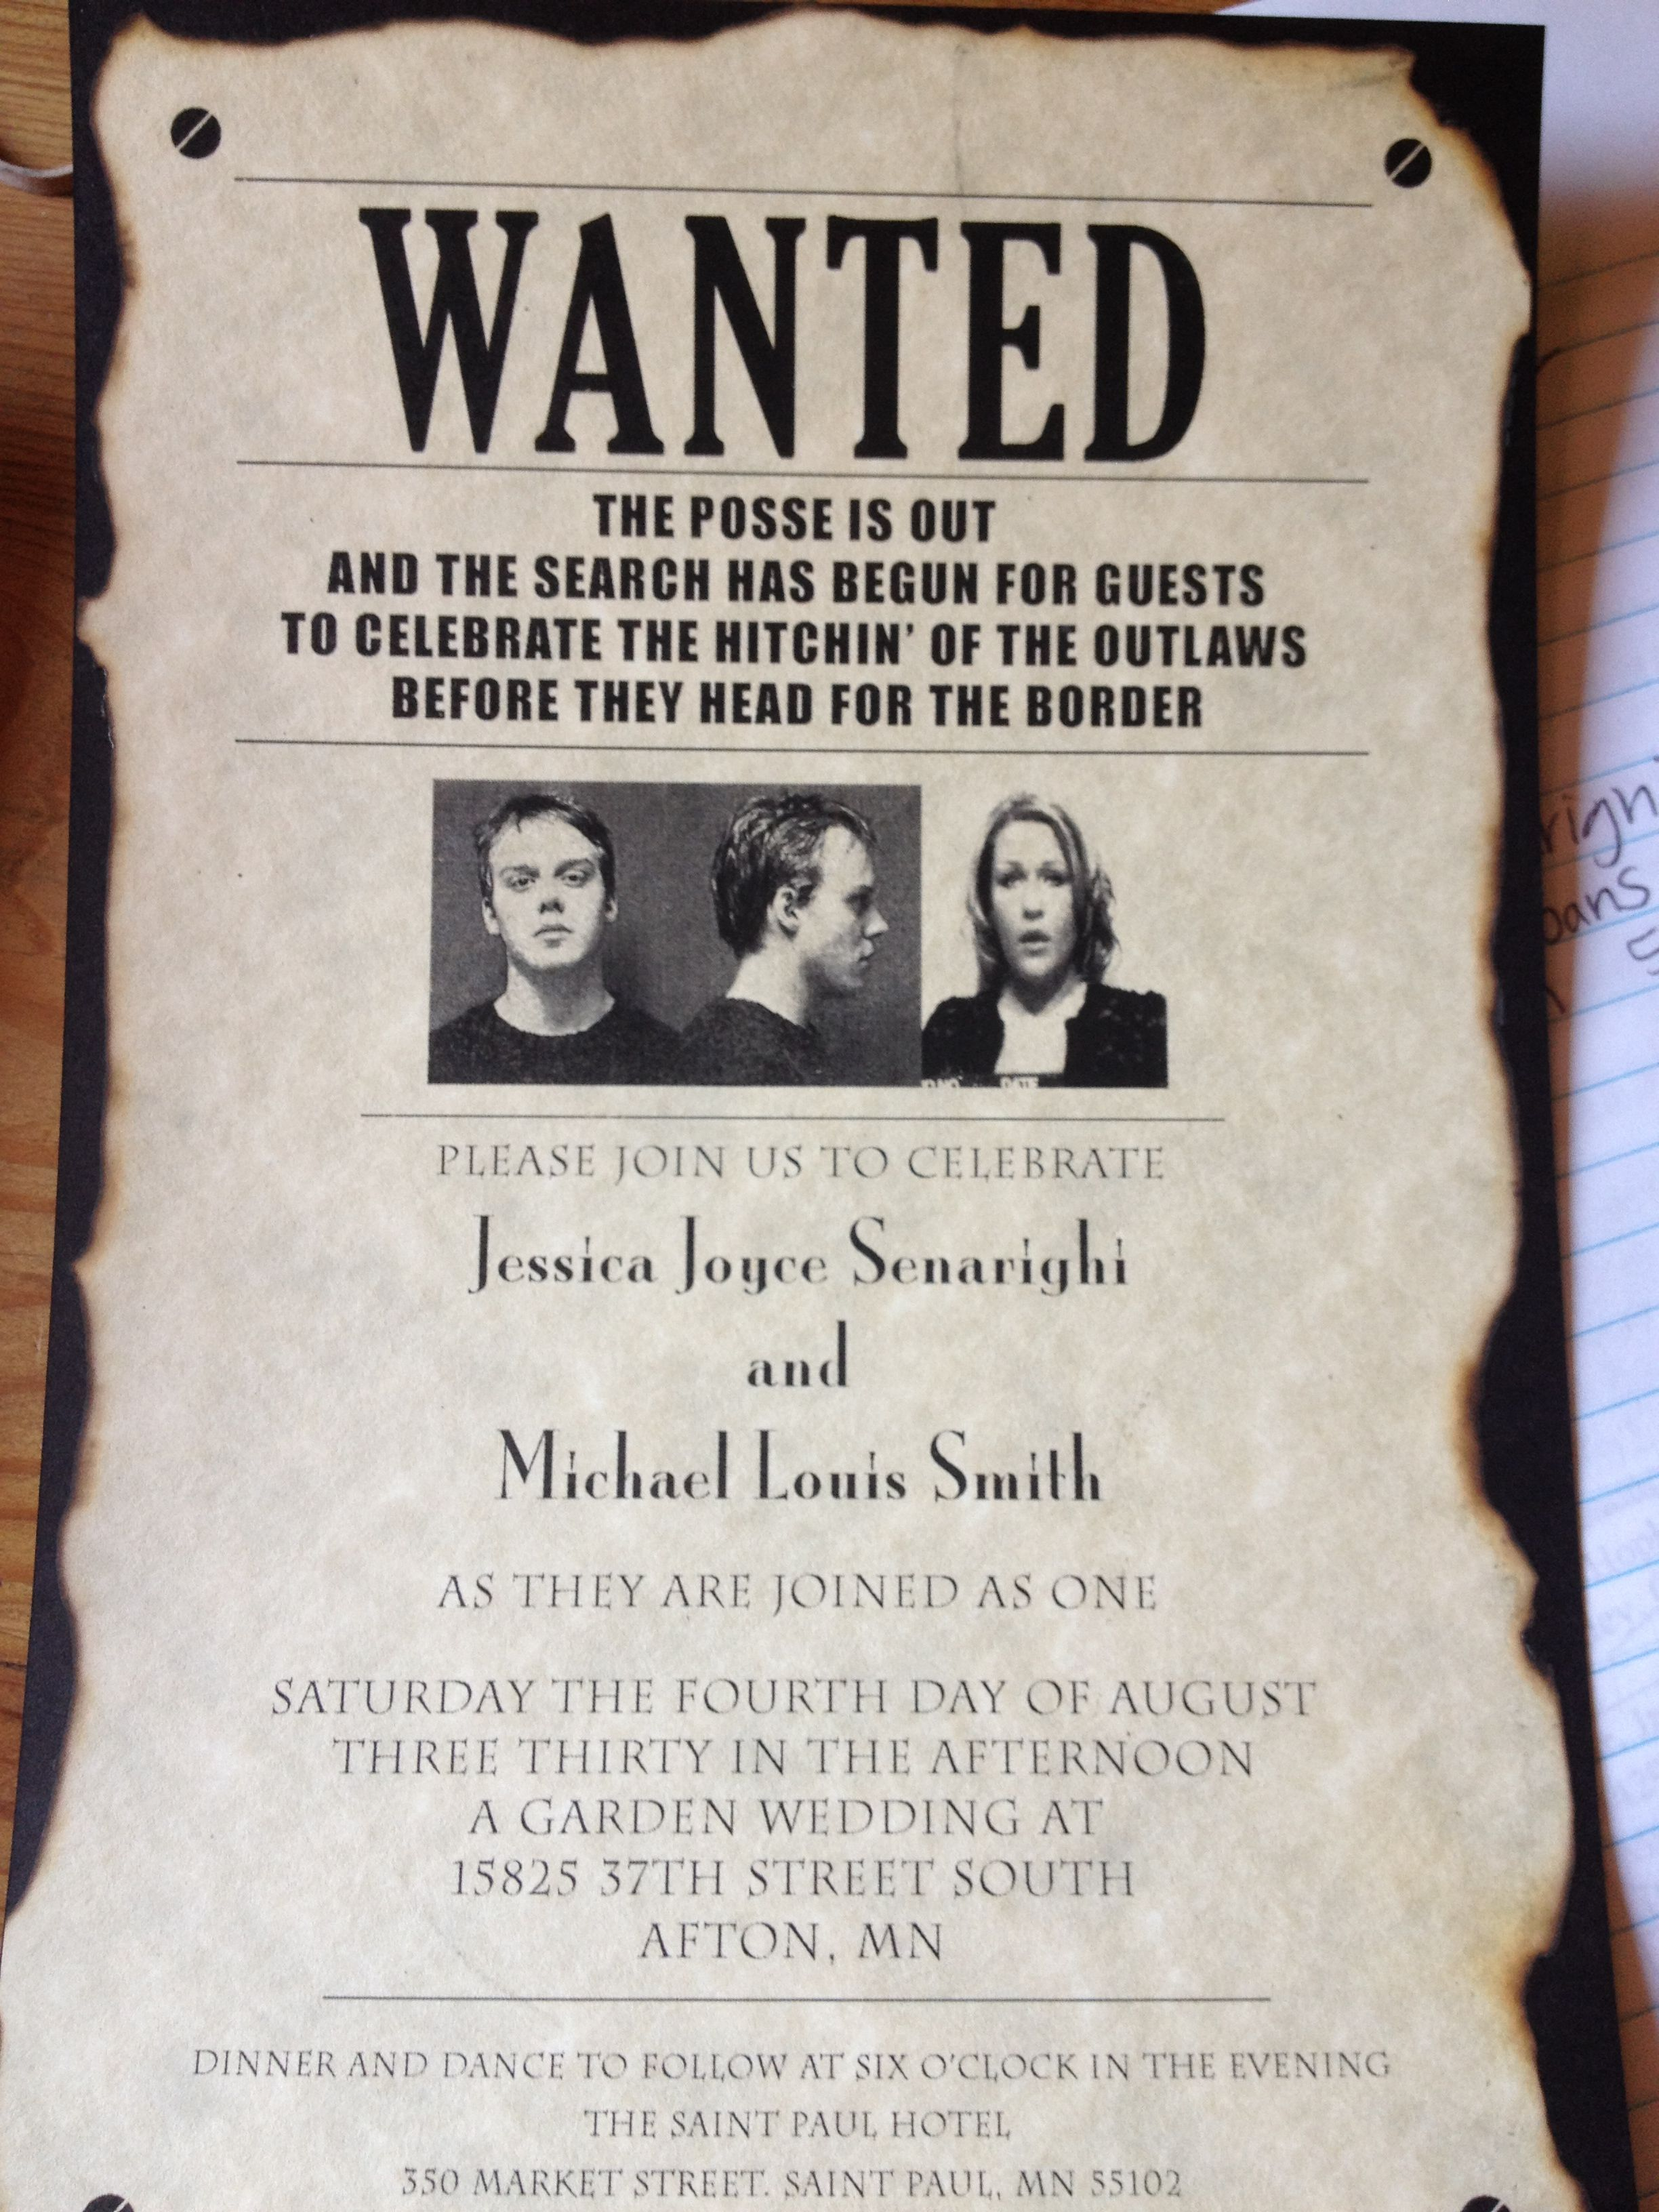 Wedding Invite Wanted Poster And Yes These Are Our Real